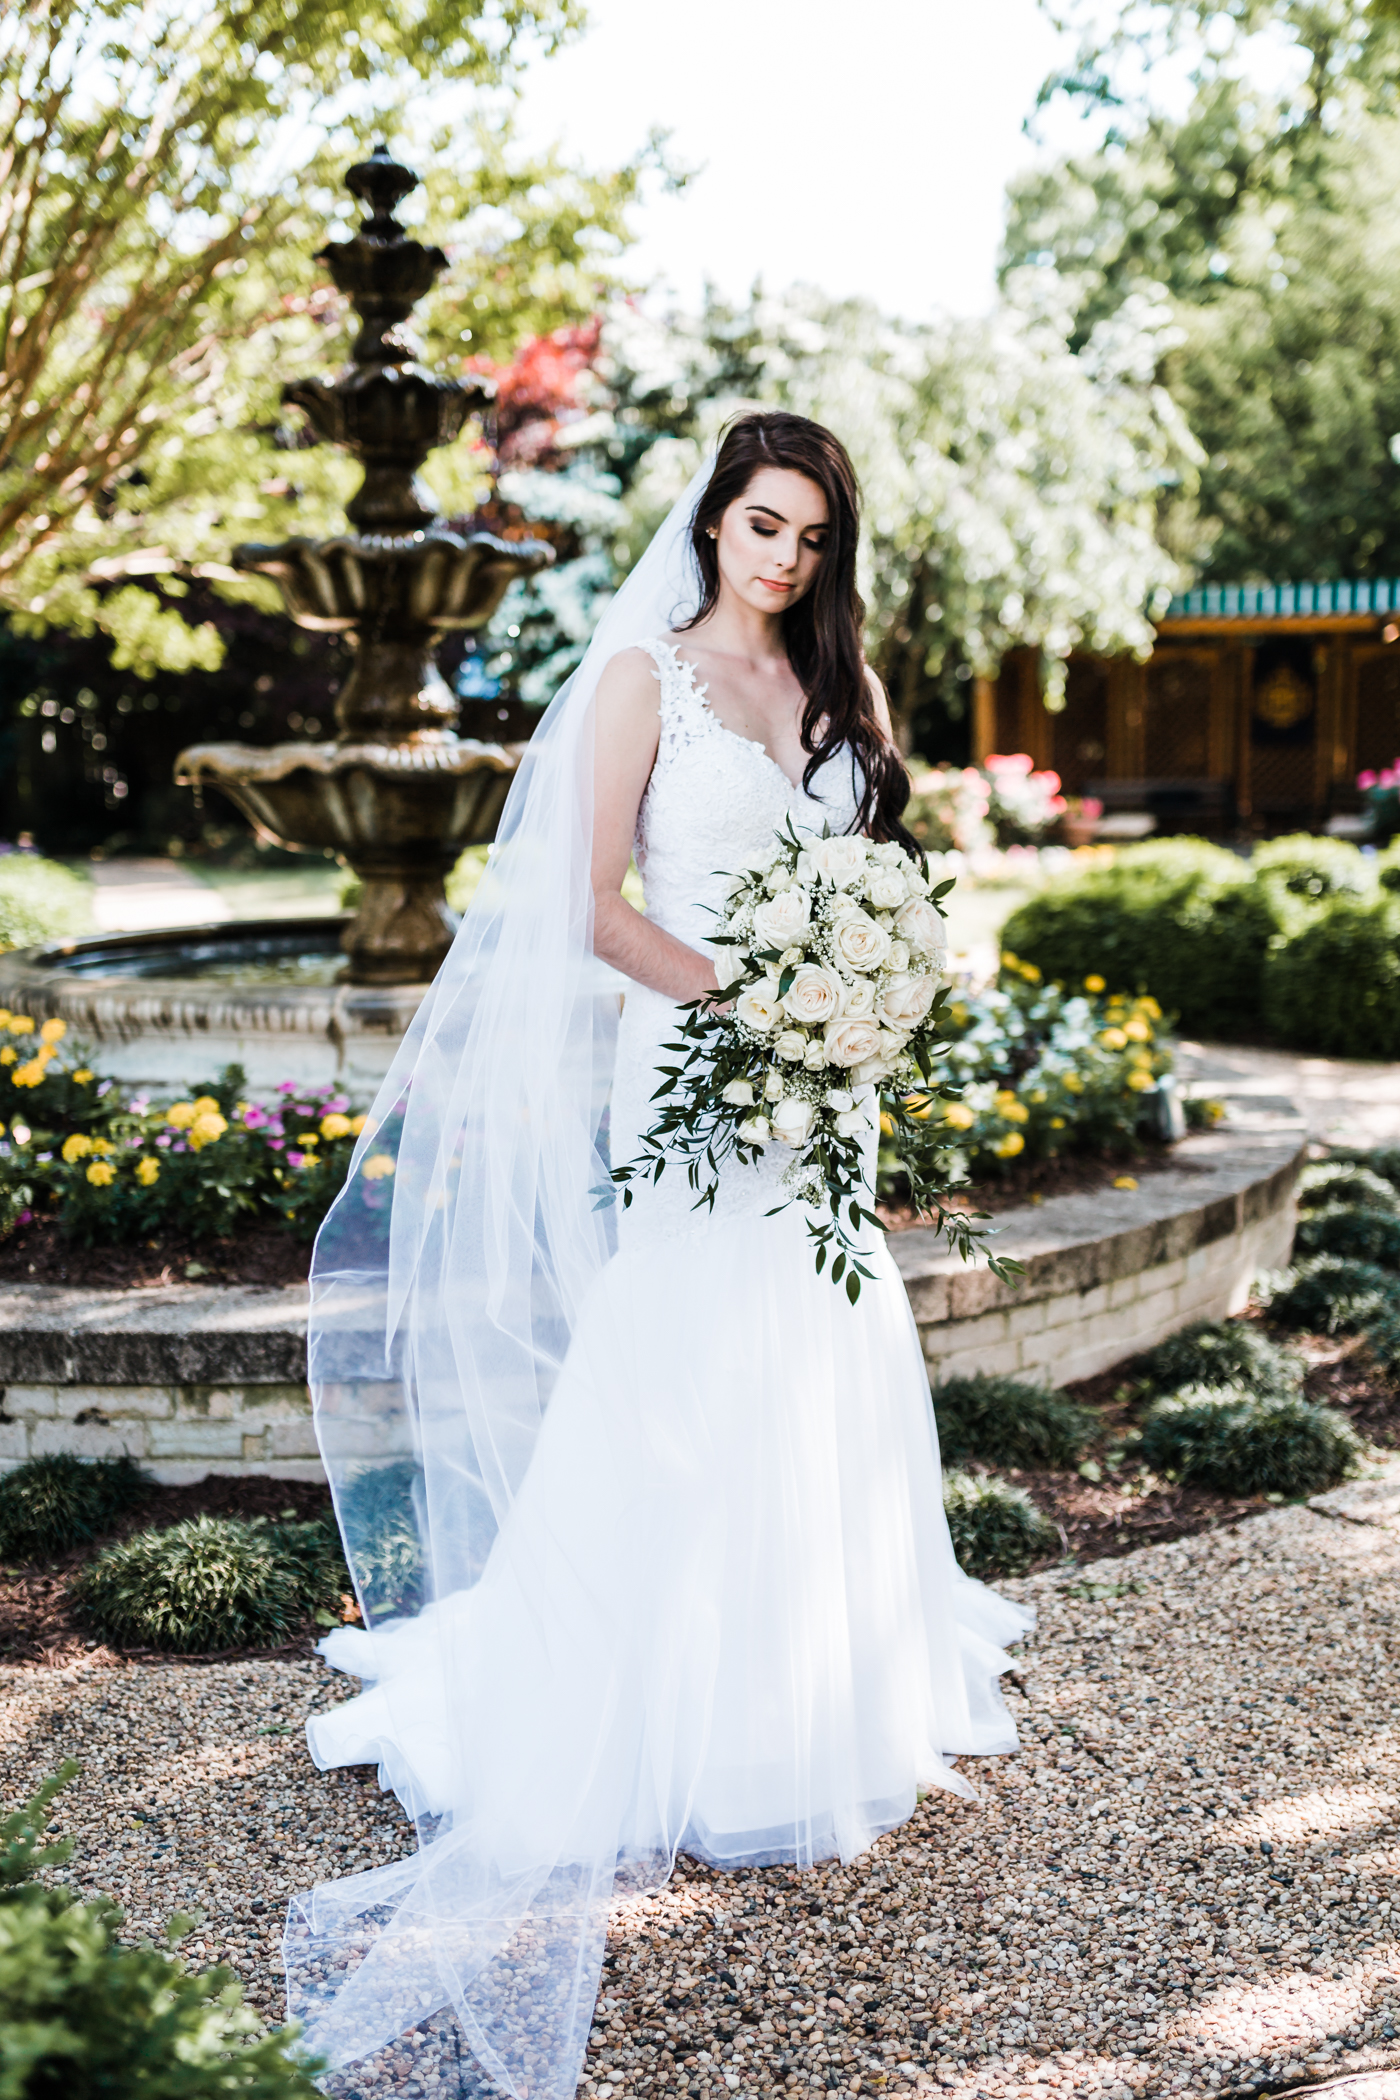 bride with cathedral length veil - superintendent's garden naval academy wedding